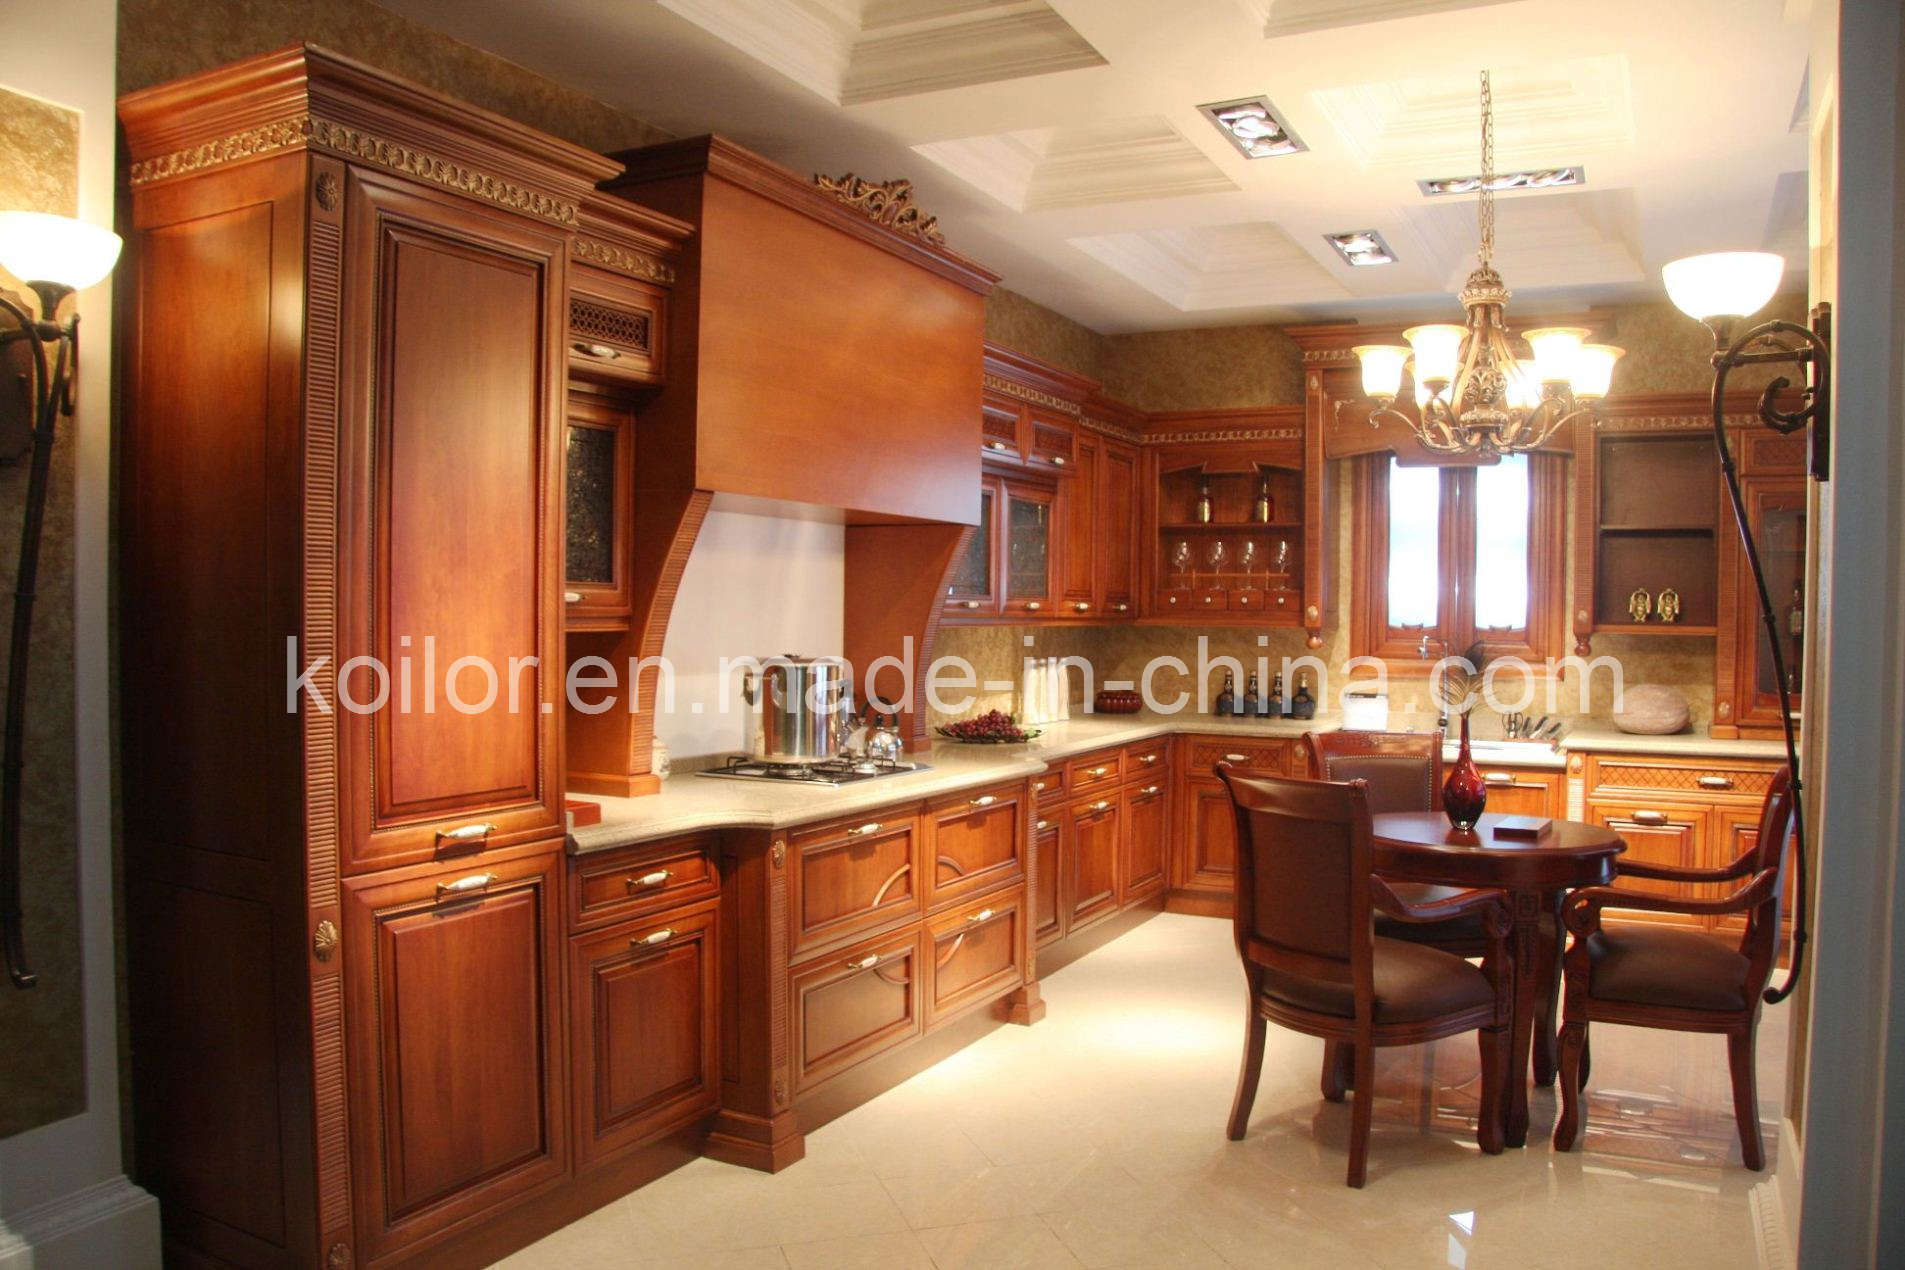 China kitchen cabinet solid wood kitchen cabinets royal for Wooden kitchen cupboards